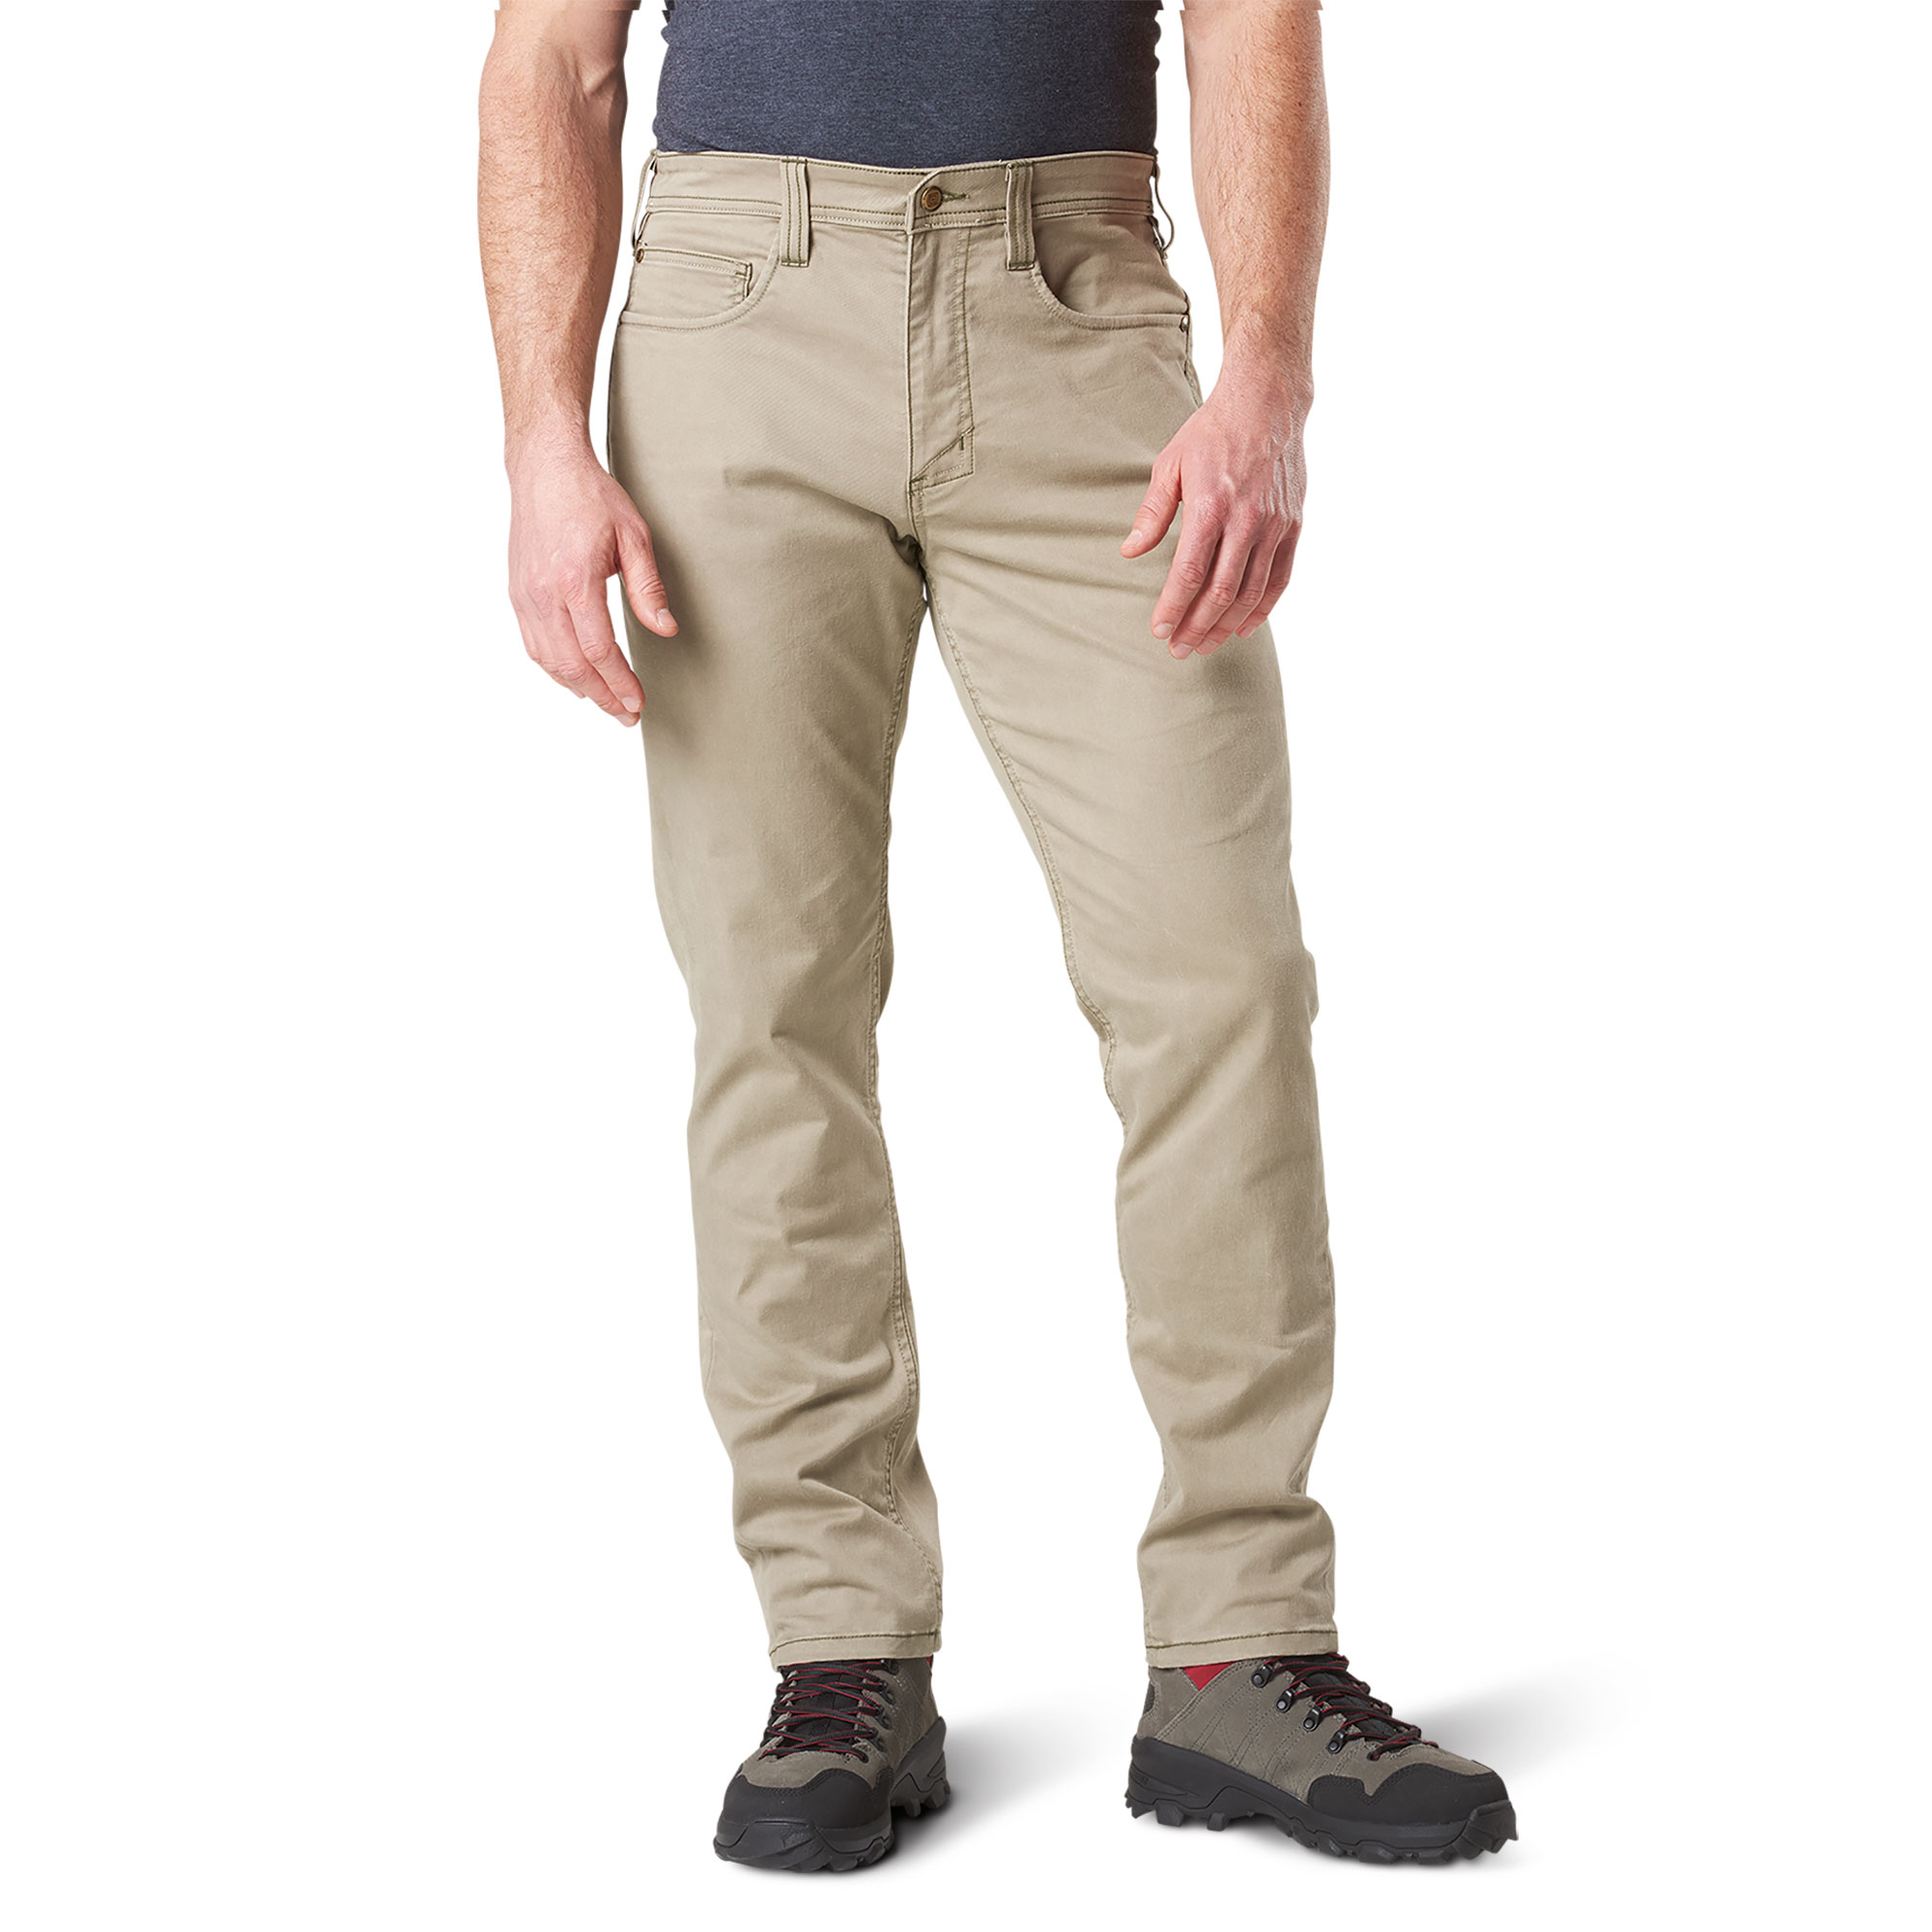 f4669470 5.11 Tactical Stryke Pant - Lightweight Cargo Pants For The Range ...